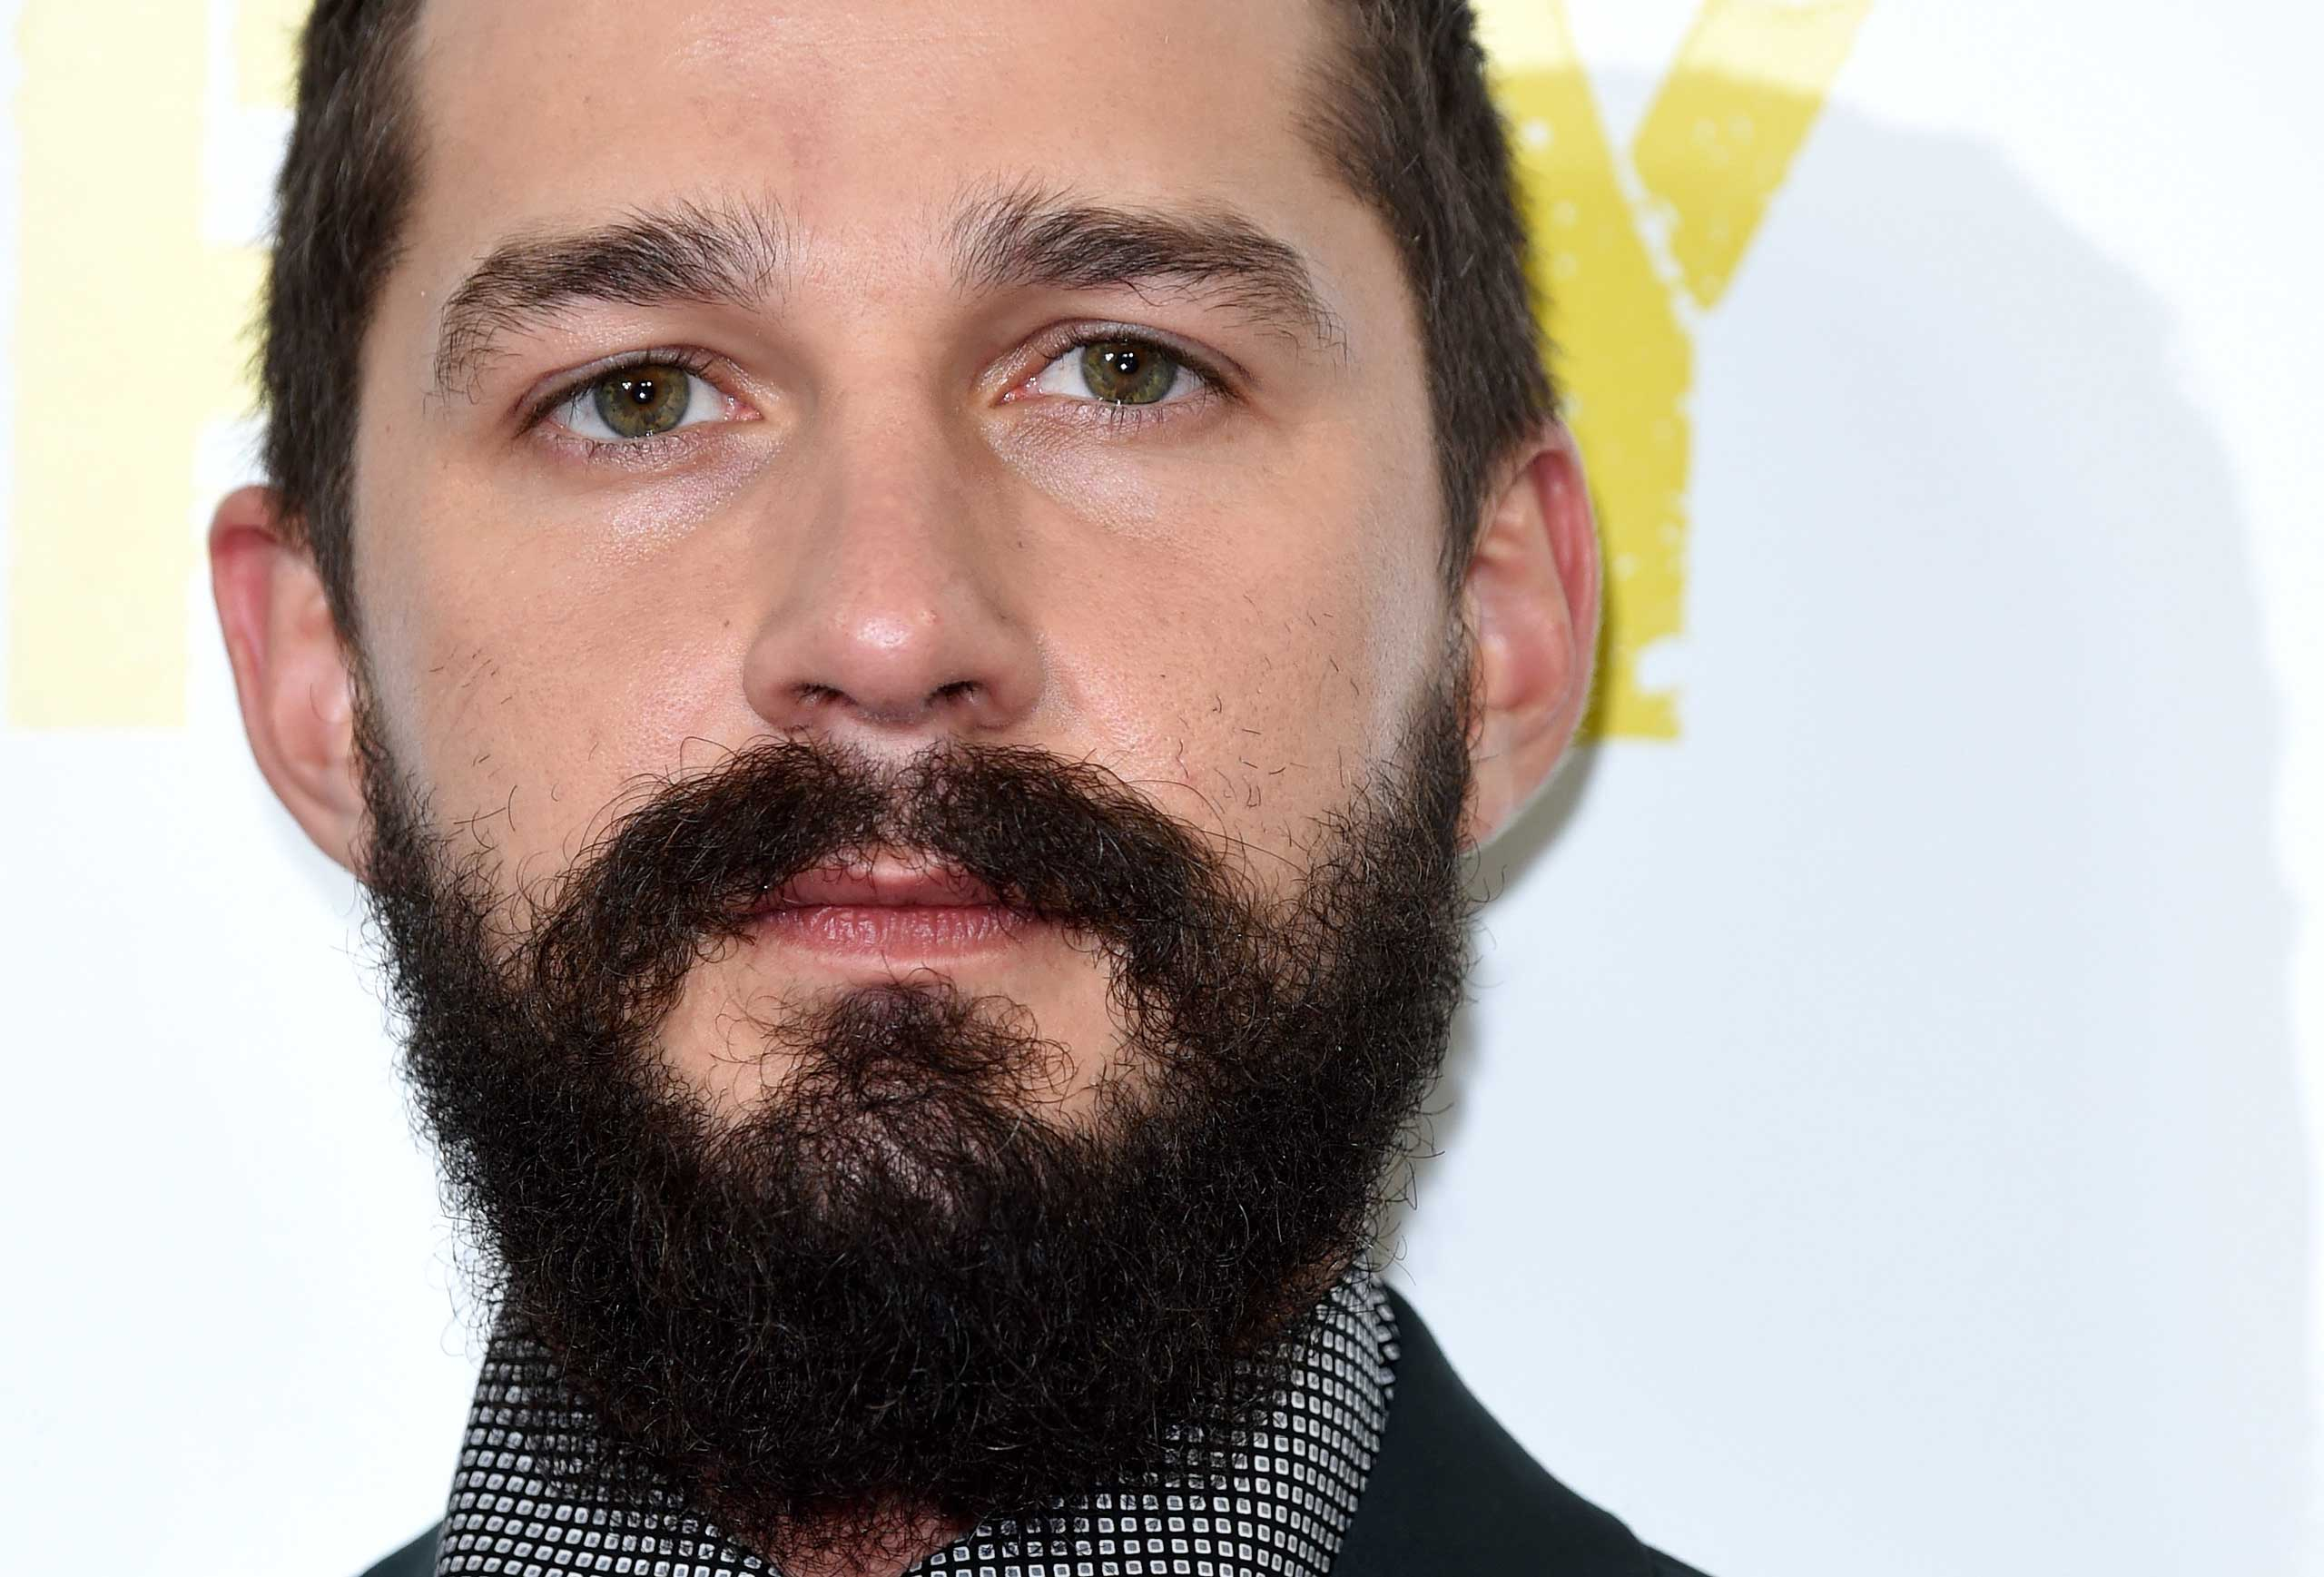 Shia LaBeouf attends a photocall for  Fury  during the 58th BFI London Film Festival at Corinthia Hotel London on Oct. 19, 2014.